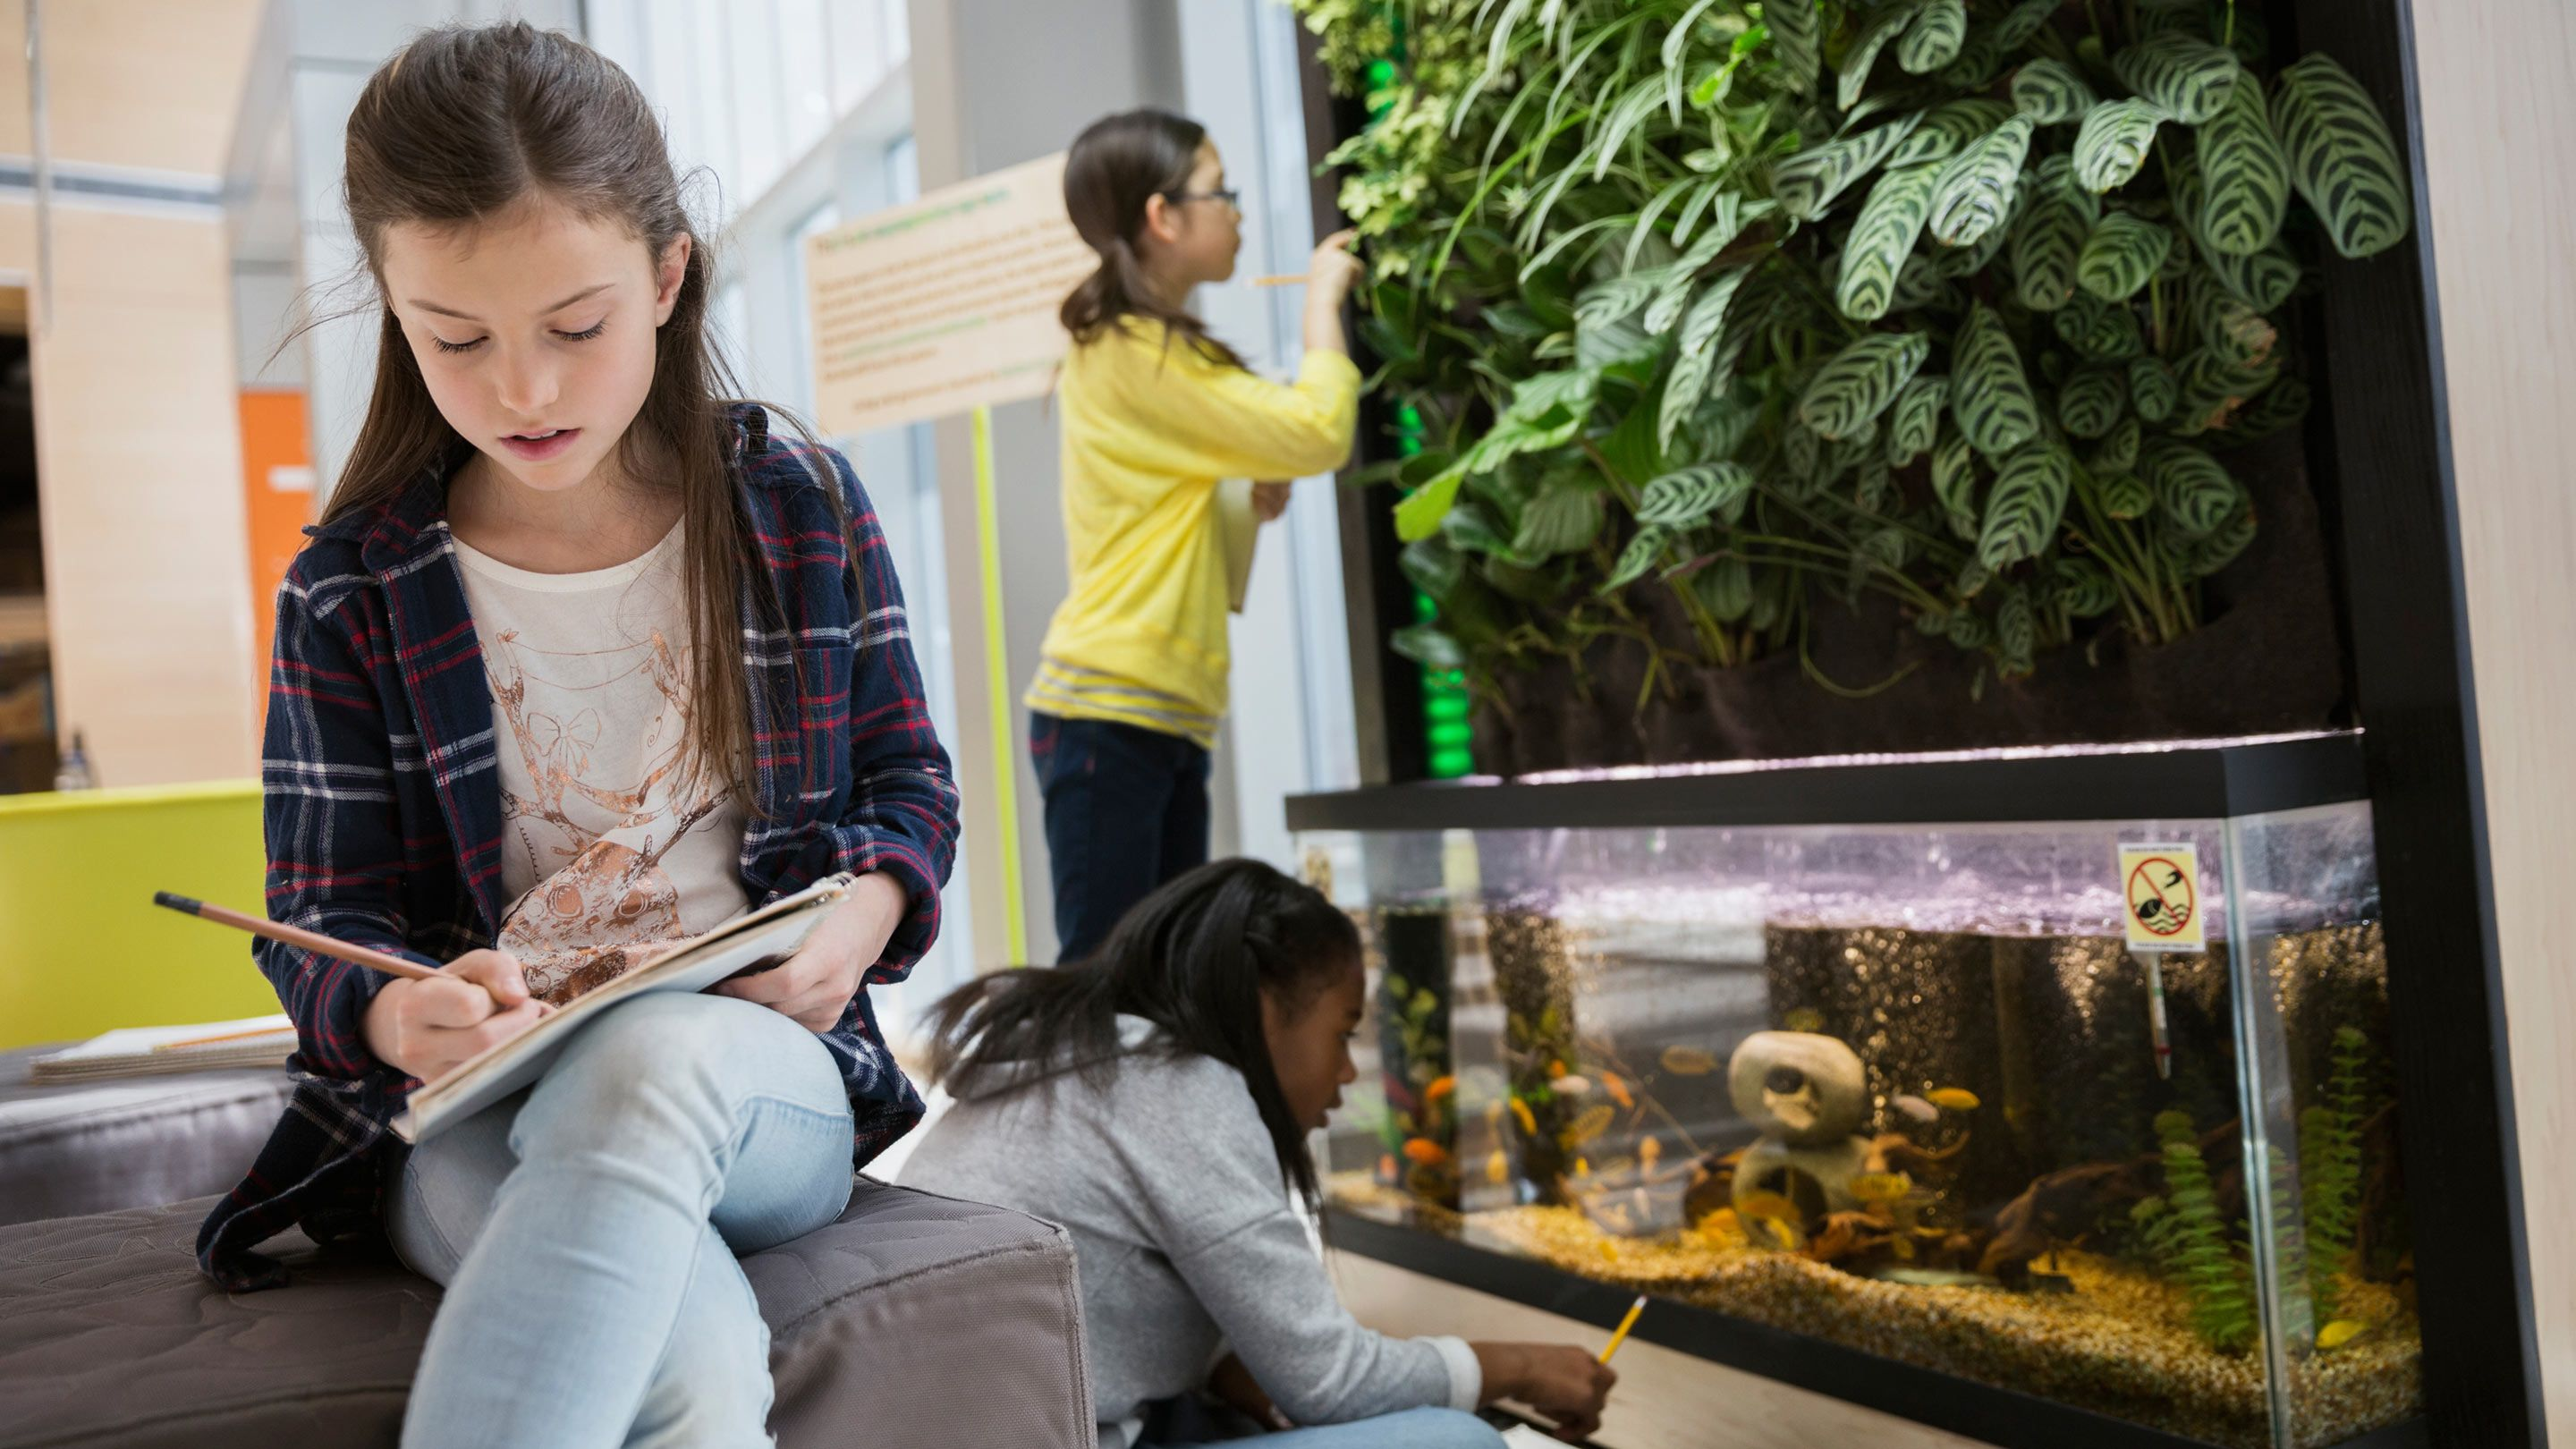 Students examine and write about an aquarium, a plant, and other things.